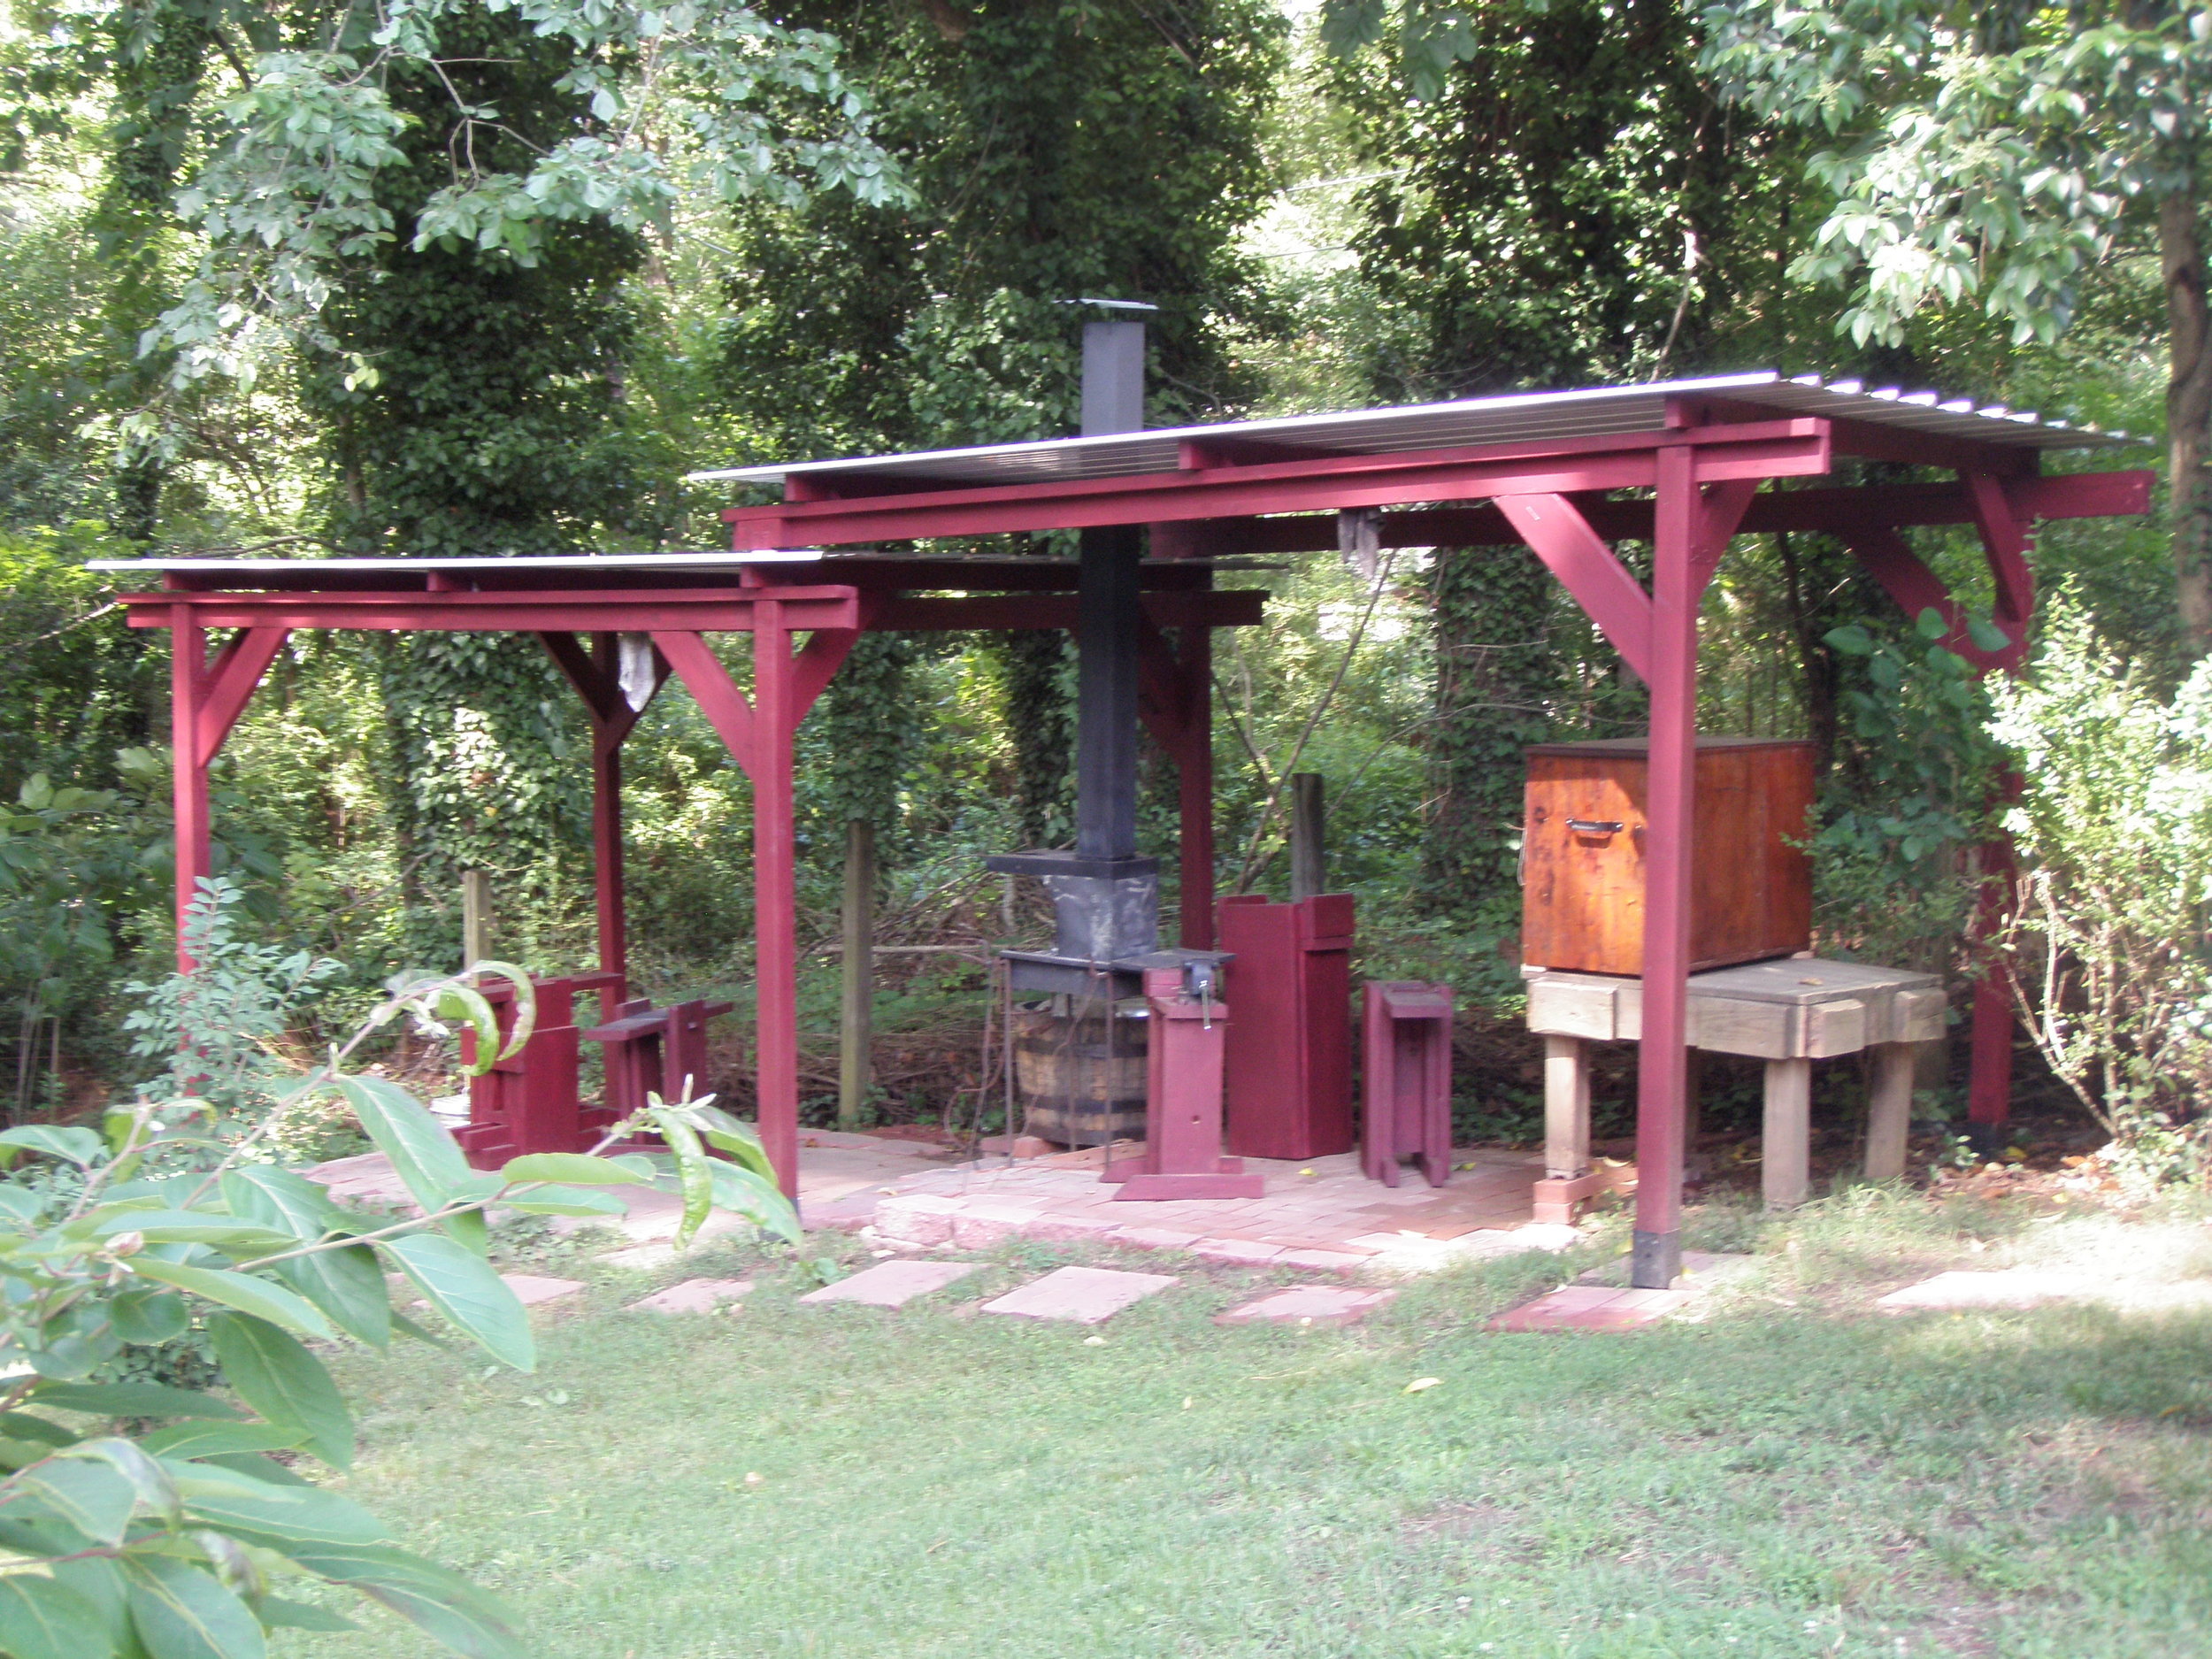 This is William Parker's forge, where he creates his unique works of art in support of human biome research.